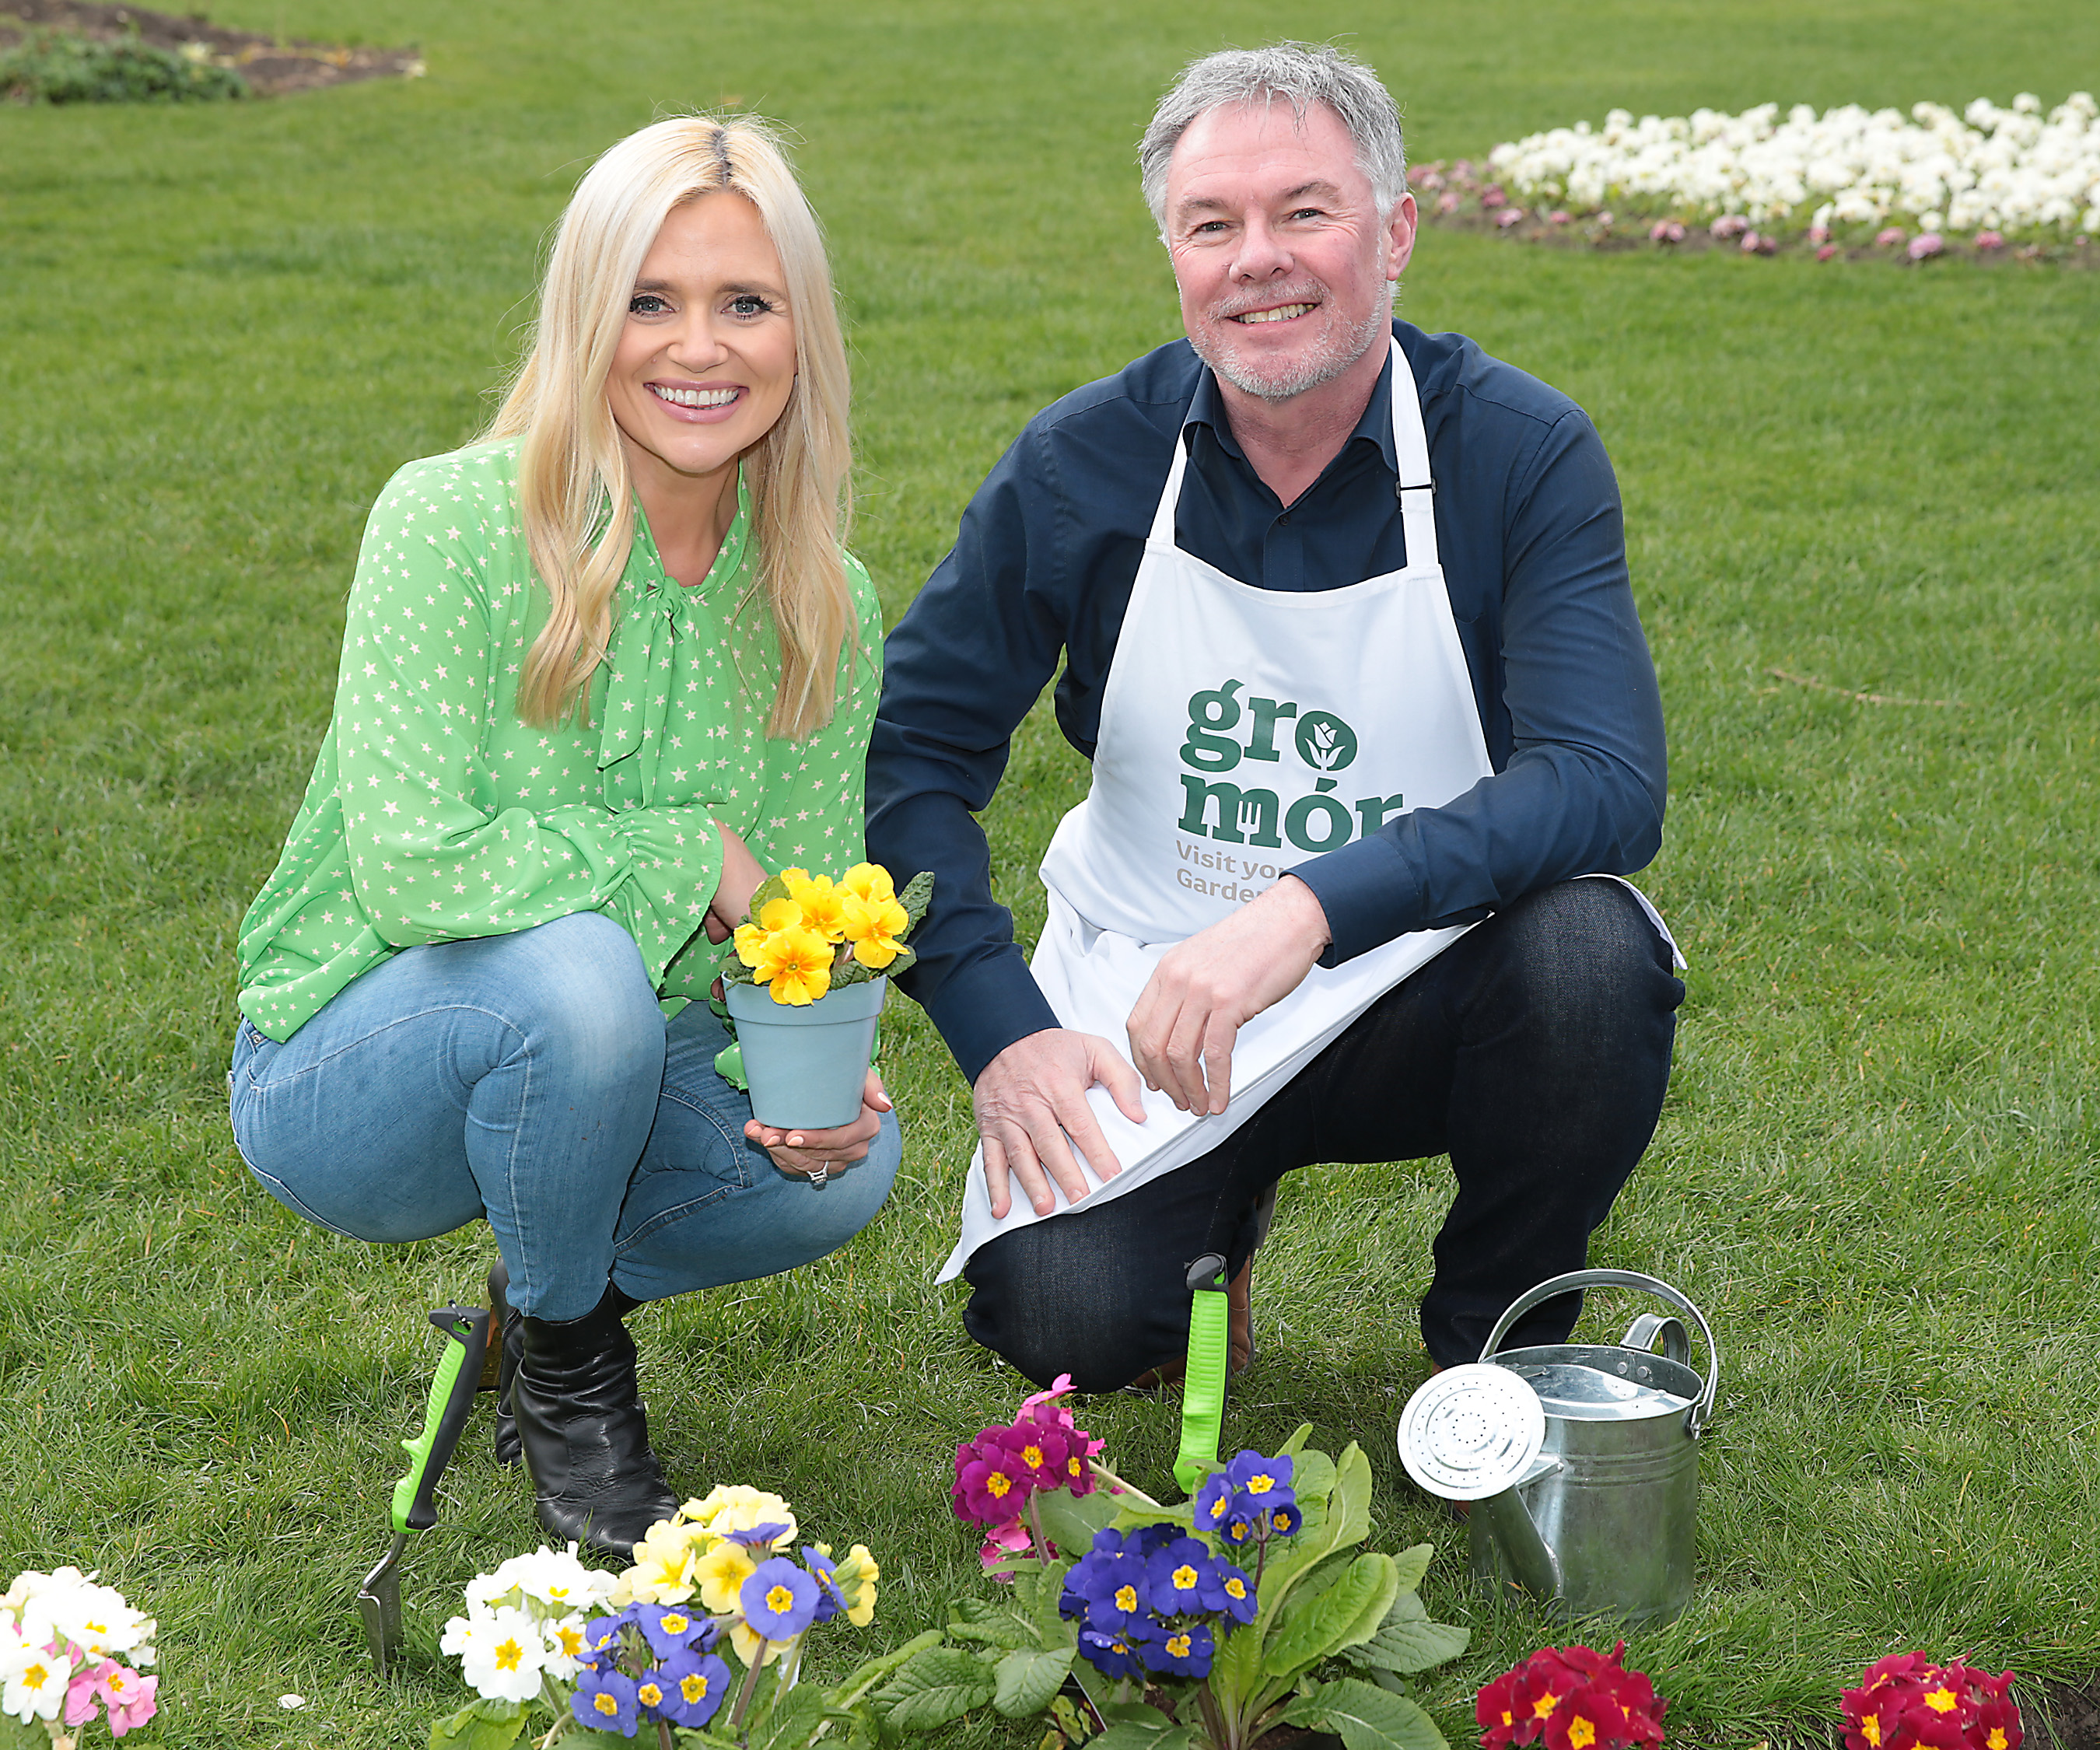 Karen Koster and Super Garden judge and the face of Bloom Festival, Gary Graham celebrate the arrival of spring and the launch of GroMór 2019 - encouraging everyone to visit their local garden centres and nurseries, buy Irish plants and get growing!        Pic Brian McEvoy No Repro fee for one use              GroMór is an initiative by Bord Bia in association with Retail Excellence Ireland, promoting its 62 local garden centres and nurseries located across the country. These centres have an extensive selection of plants along with qualified staff, who are available to offer free expert advice to people in all age groups from novices and new homeowners to experienced gardeners.   Discover your green fingers simply grab a trowel and uncover the beauty and mystery of the garden.  GroMór 2019 has two key themes that will focus on the seasonal plants with 'Garden Colour' across April and May and then 'Container Garden' from June onwards. April is the month when spring really starts to arrive and with the advice of GroMór ambassador Gary Graham, comes the opportunity to create your own super garden this summer! For anyone looking for advice or easy to follow guides and videos on how to grow flowers, plants, herbs, trees and vegetables or to find your local garden centre or nursery visit, www.GroMór.ie . GroMór 2019 is sponsored by Bord na Móna and Westland Horticulture. www.GroMór.ie